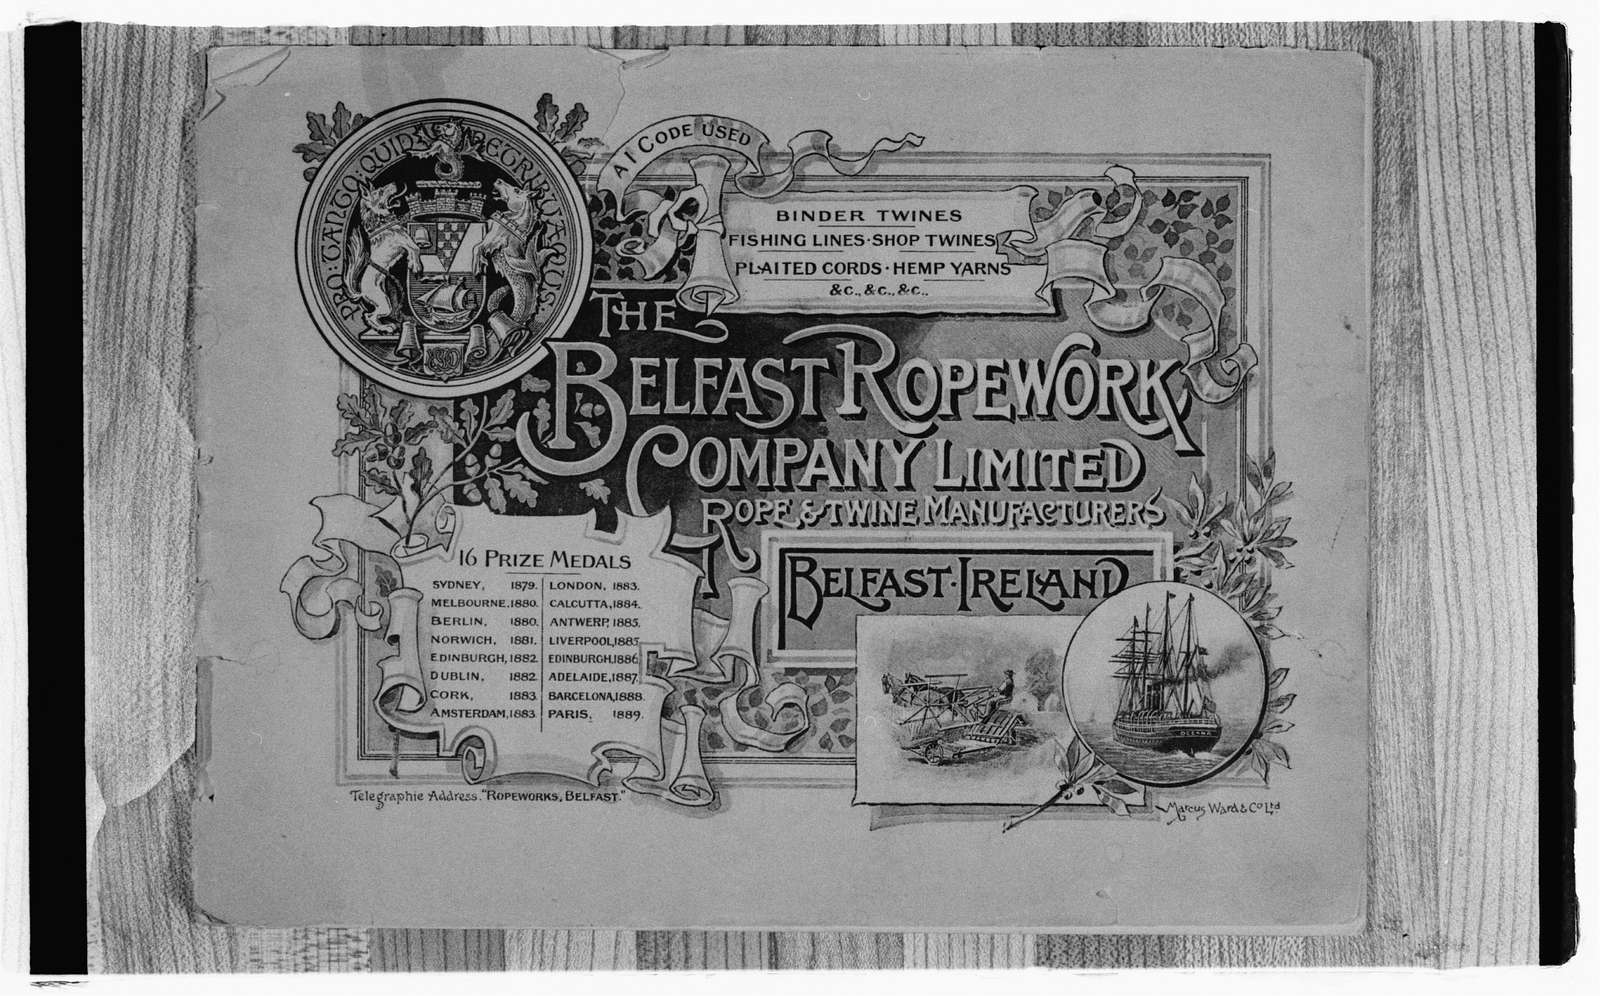 Belfast Works rope machinery brochure cover, 19th Century.